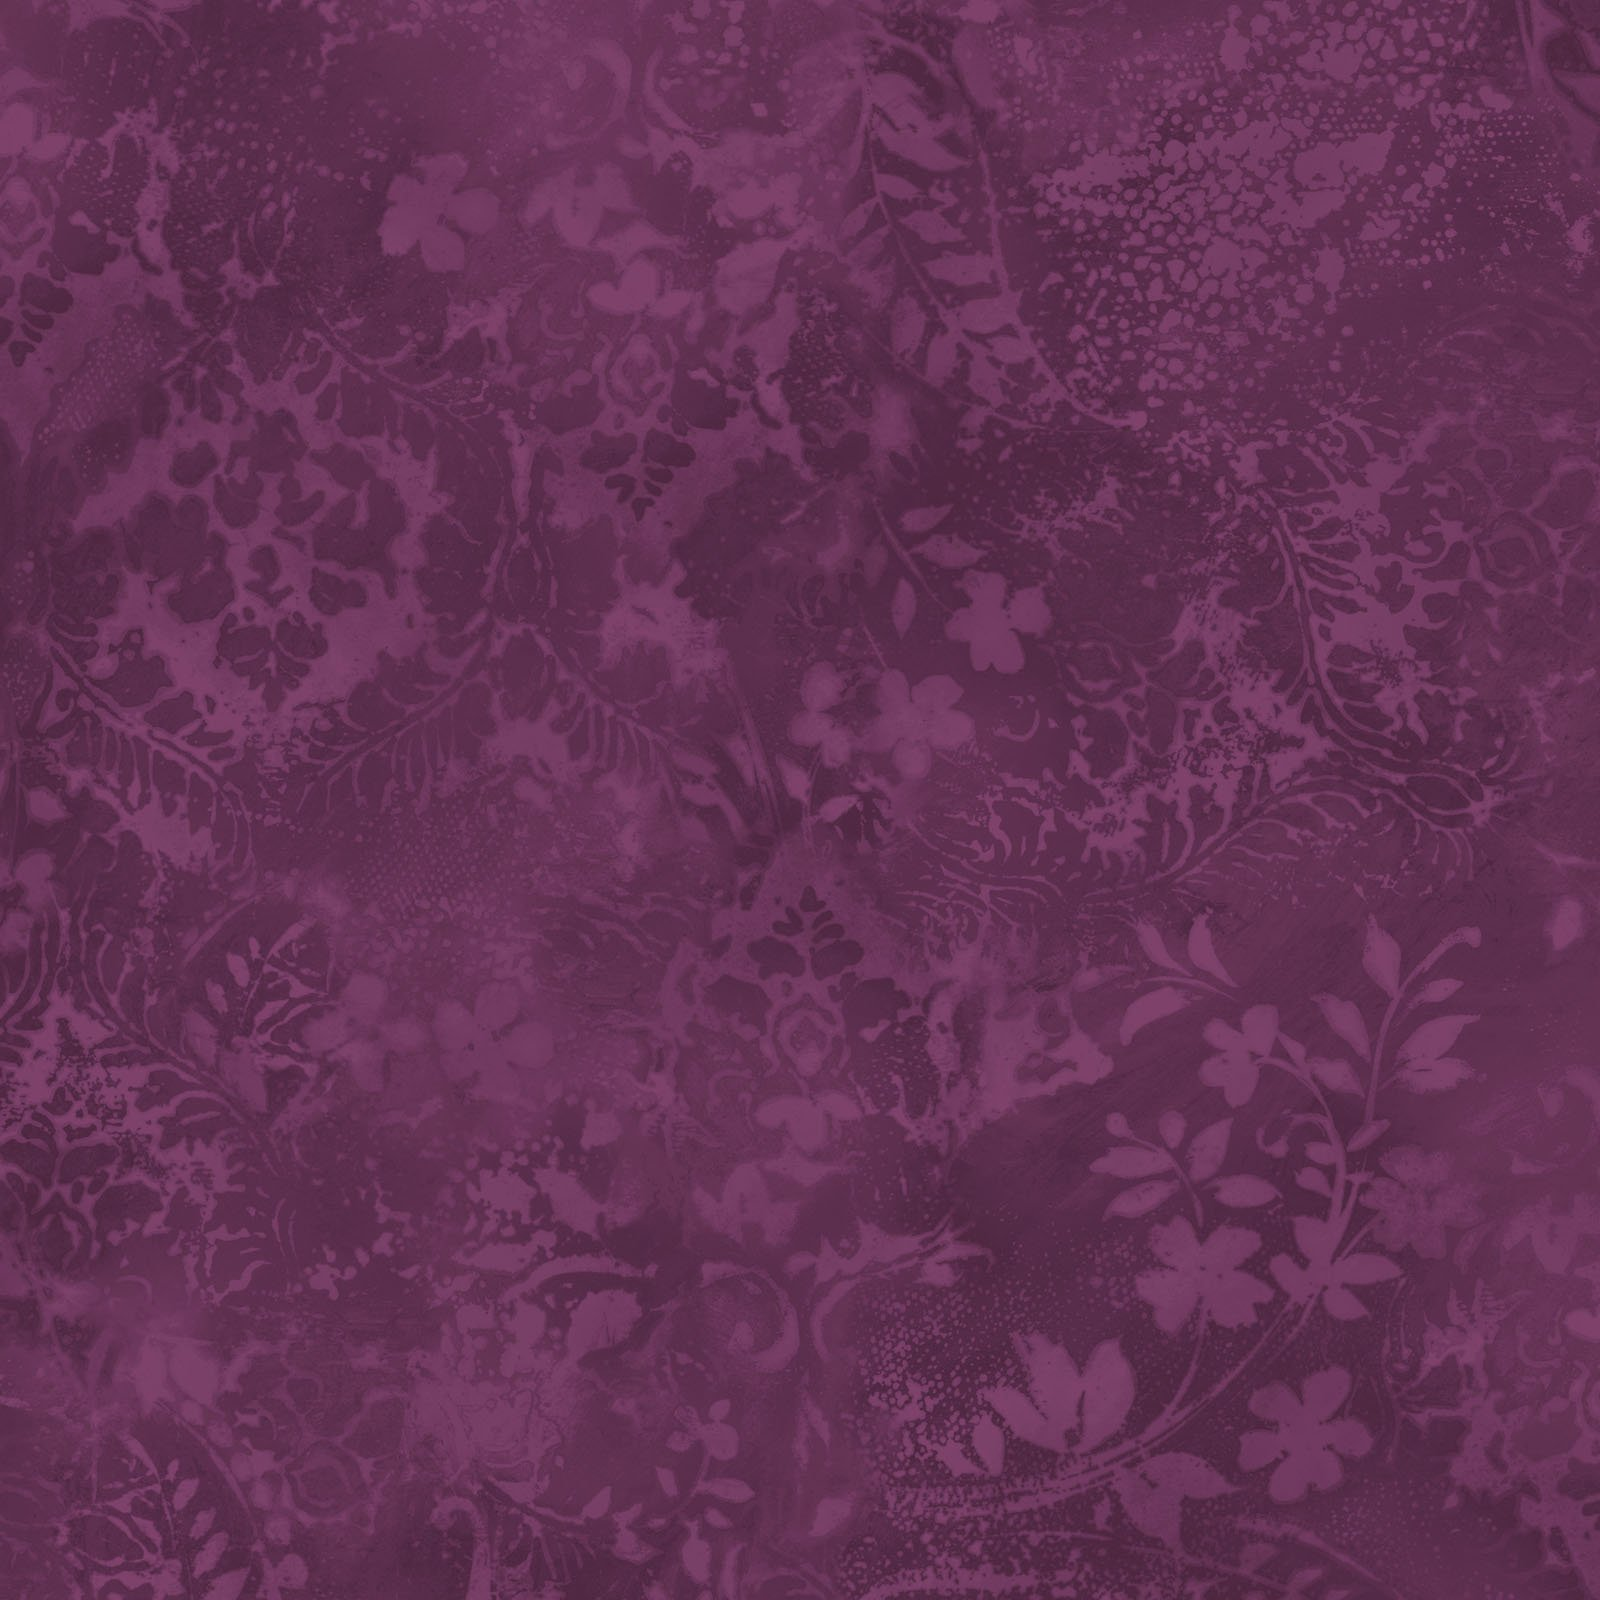 EESC-QBD105 V - BEAUTIFUL BACKING 108 VINTAGE DAMASK BY MAYWOOD PLUM - ARRIVING IN MAY 2021